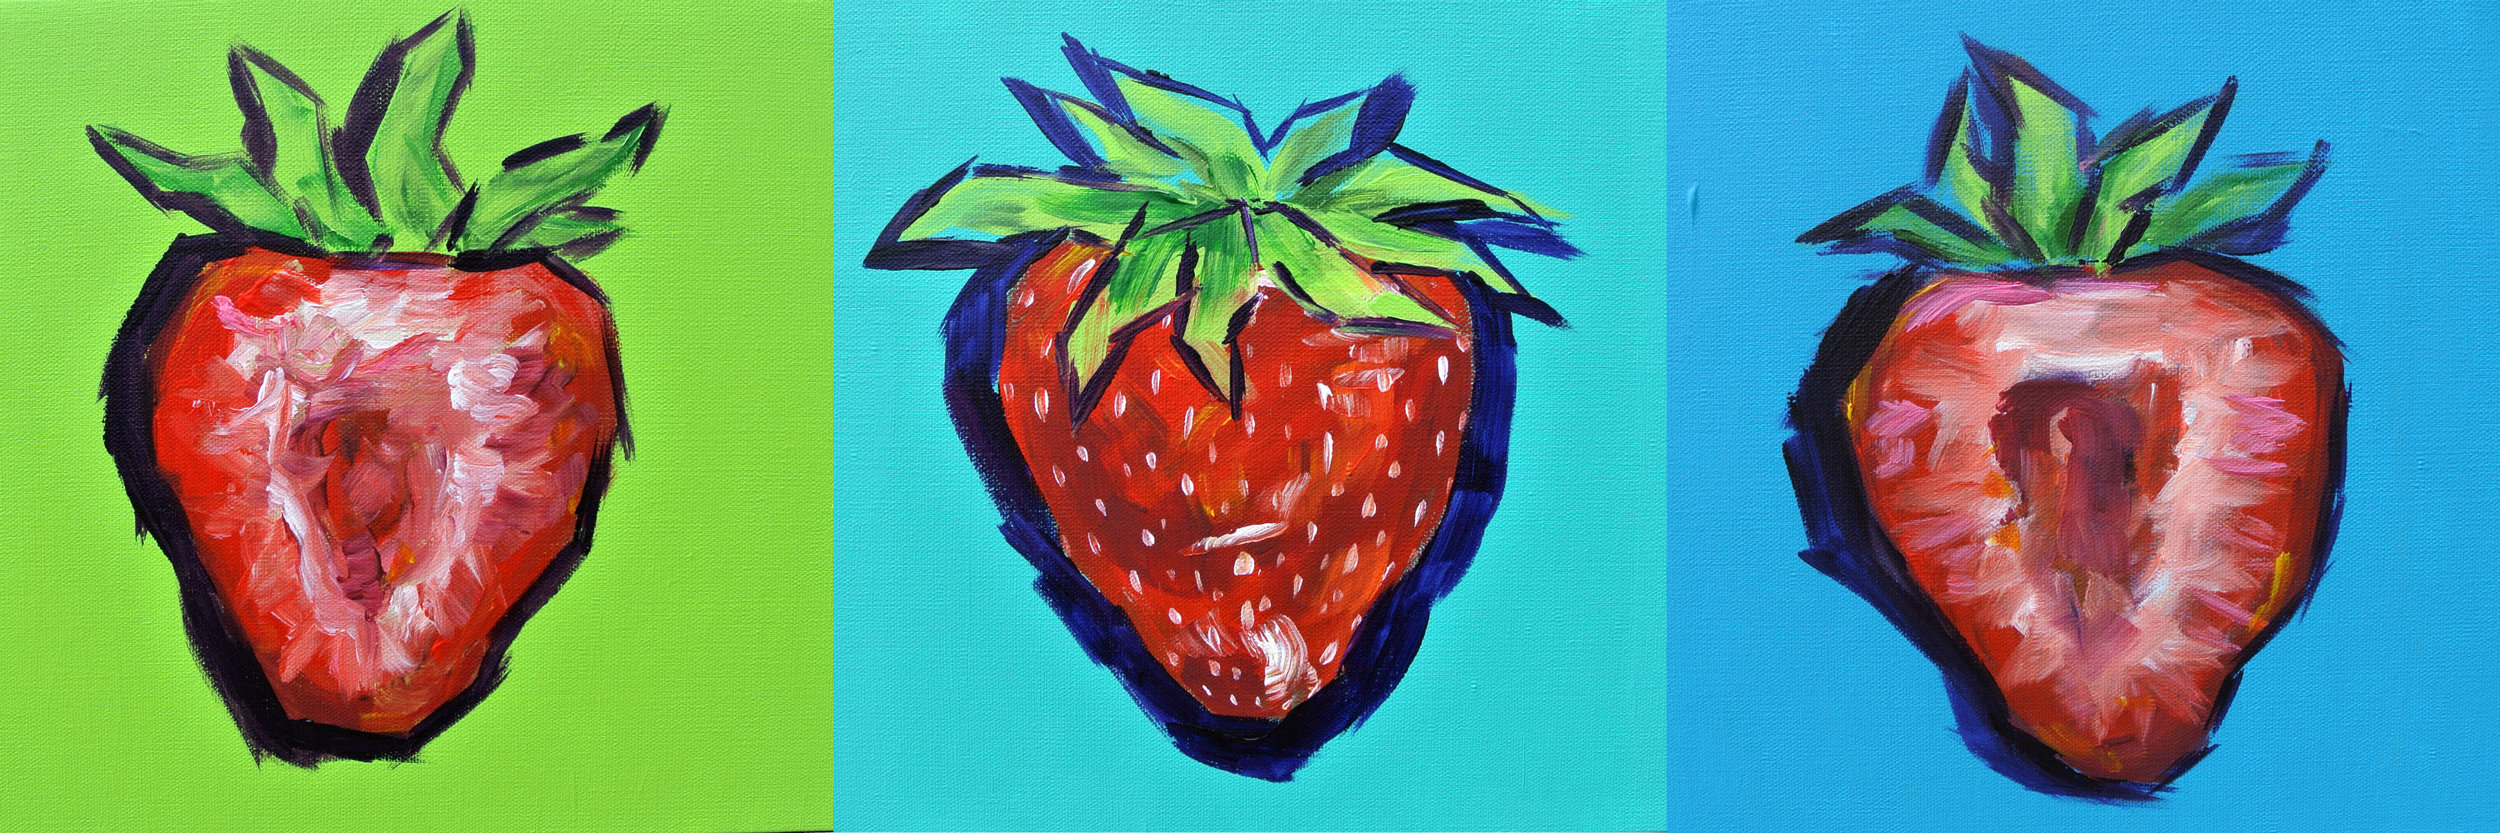 Strawberries 12x36""